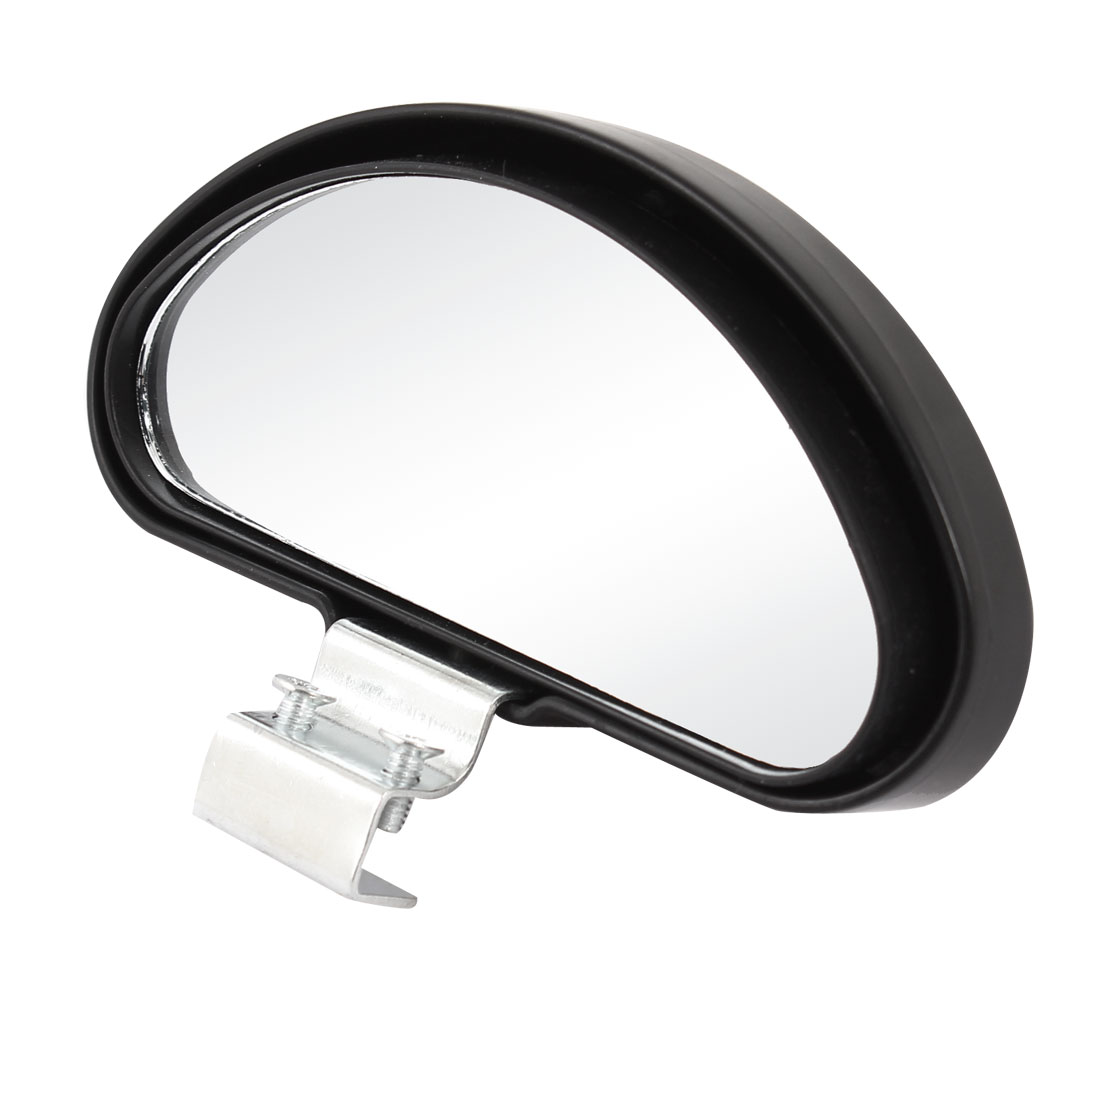 Car Auto Arch Wide Angle Flat Blind Spot Mirror Black 100mm x 43mm